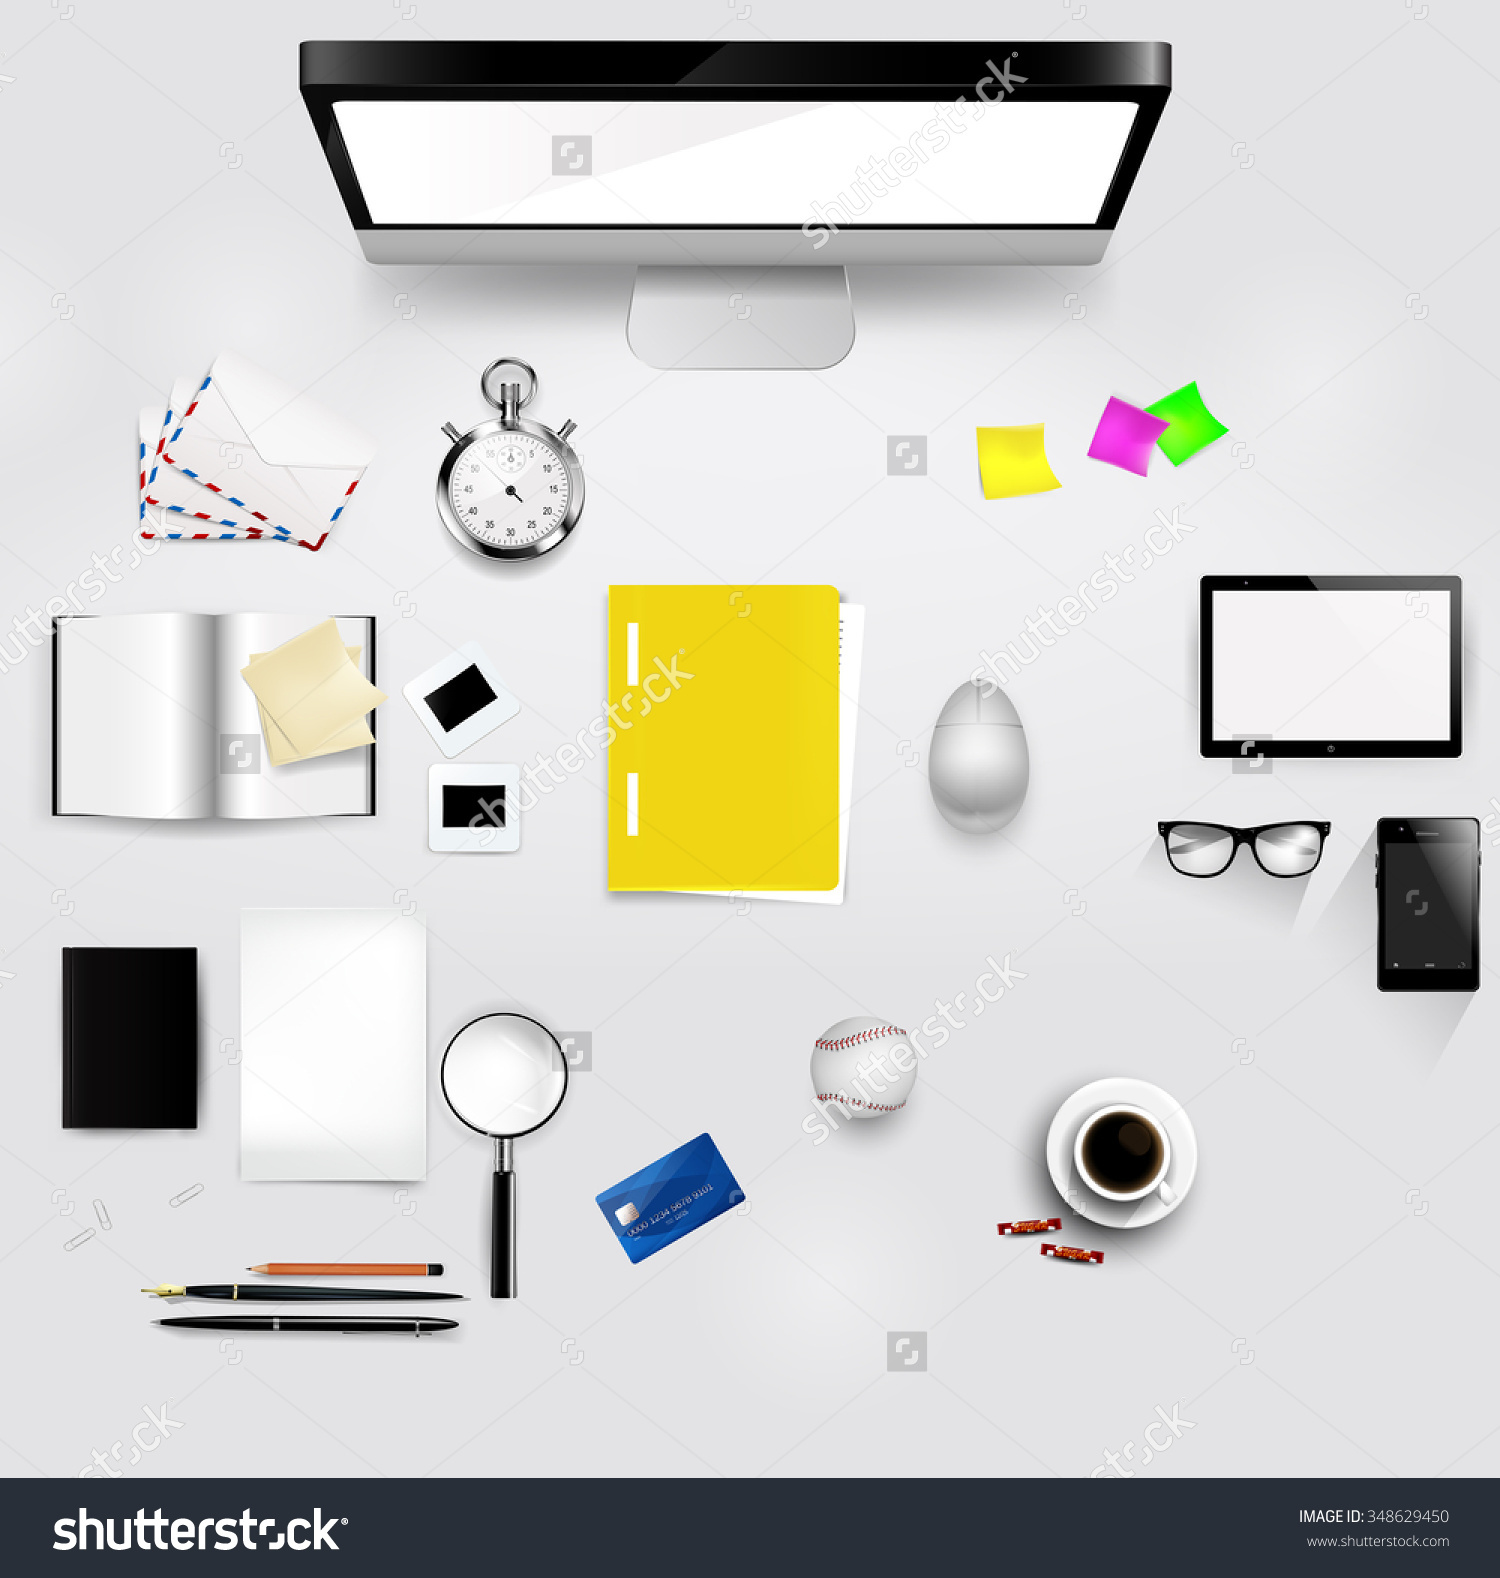 Save desktop clipart layout picture freeuse library Desktop Layout With Different Items On It. Each Of The Items Is A ... picture freeuse library